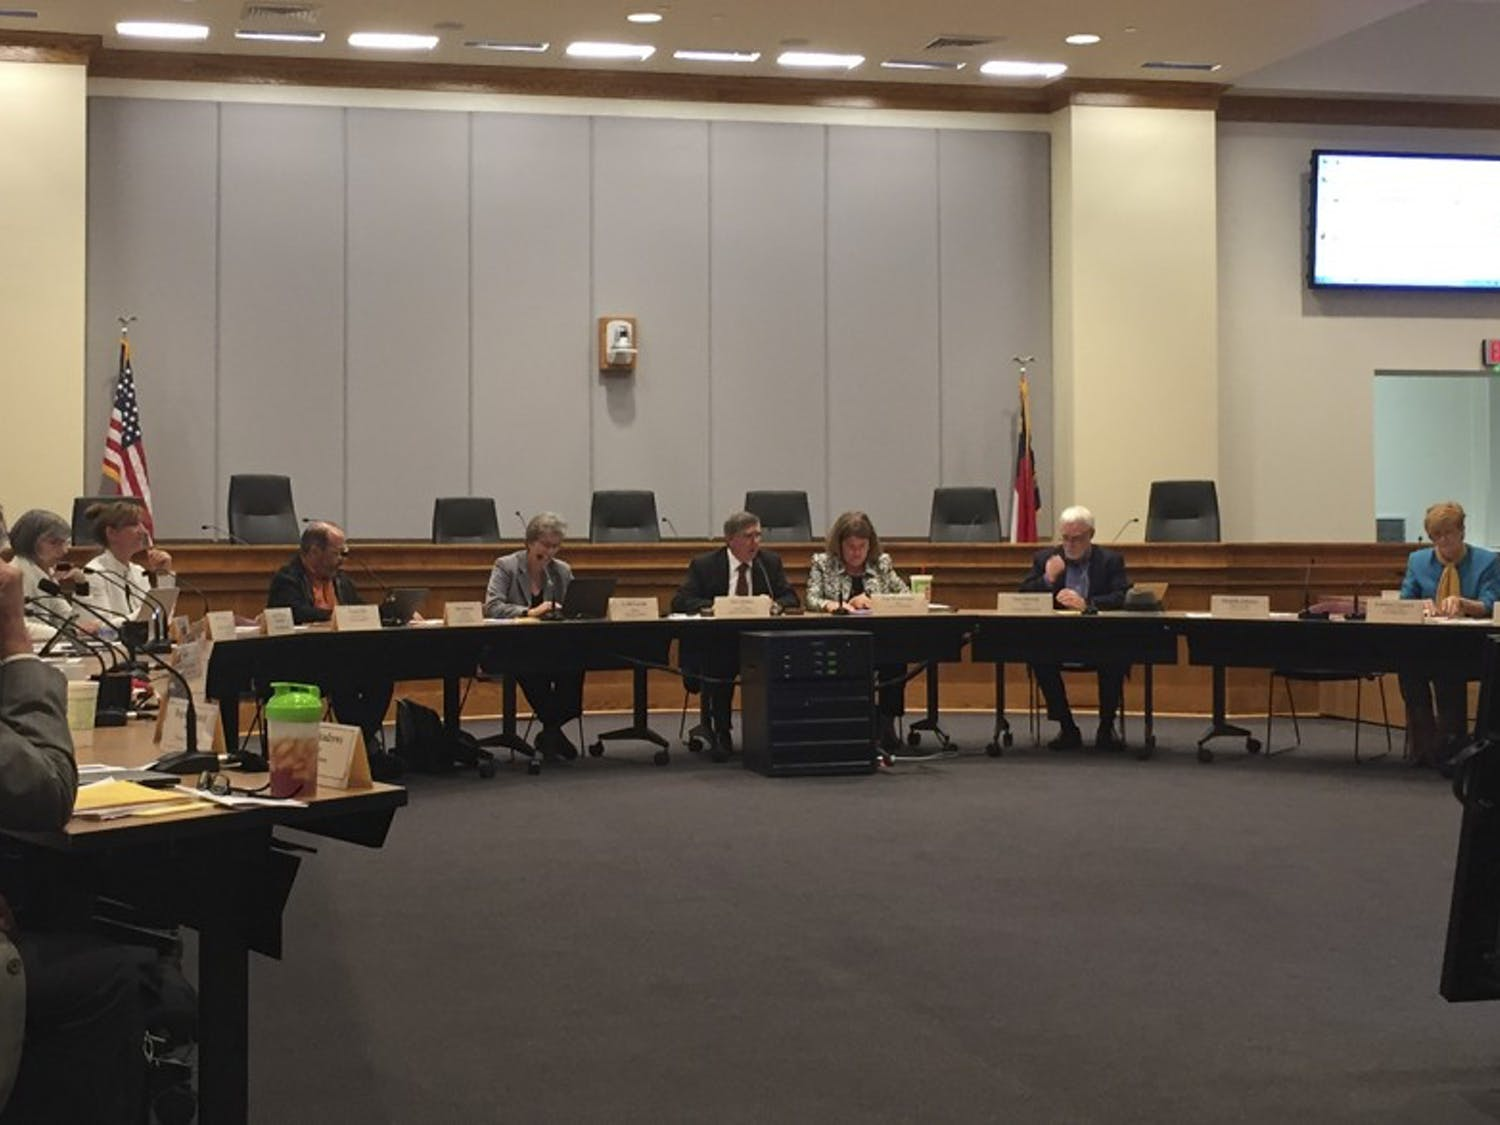 The Orange County board of commissioners, chapel hill town council and the Carrboro board of aldermen met in Hillsborough on Thursday.